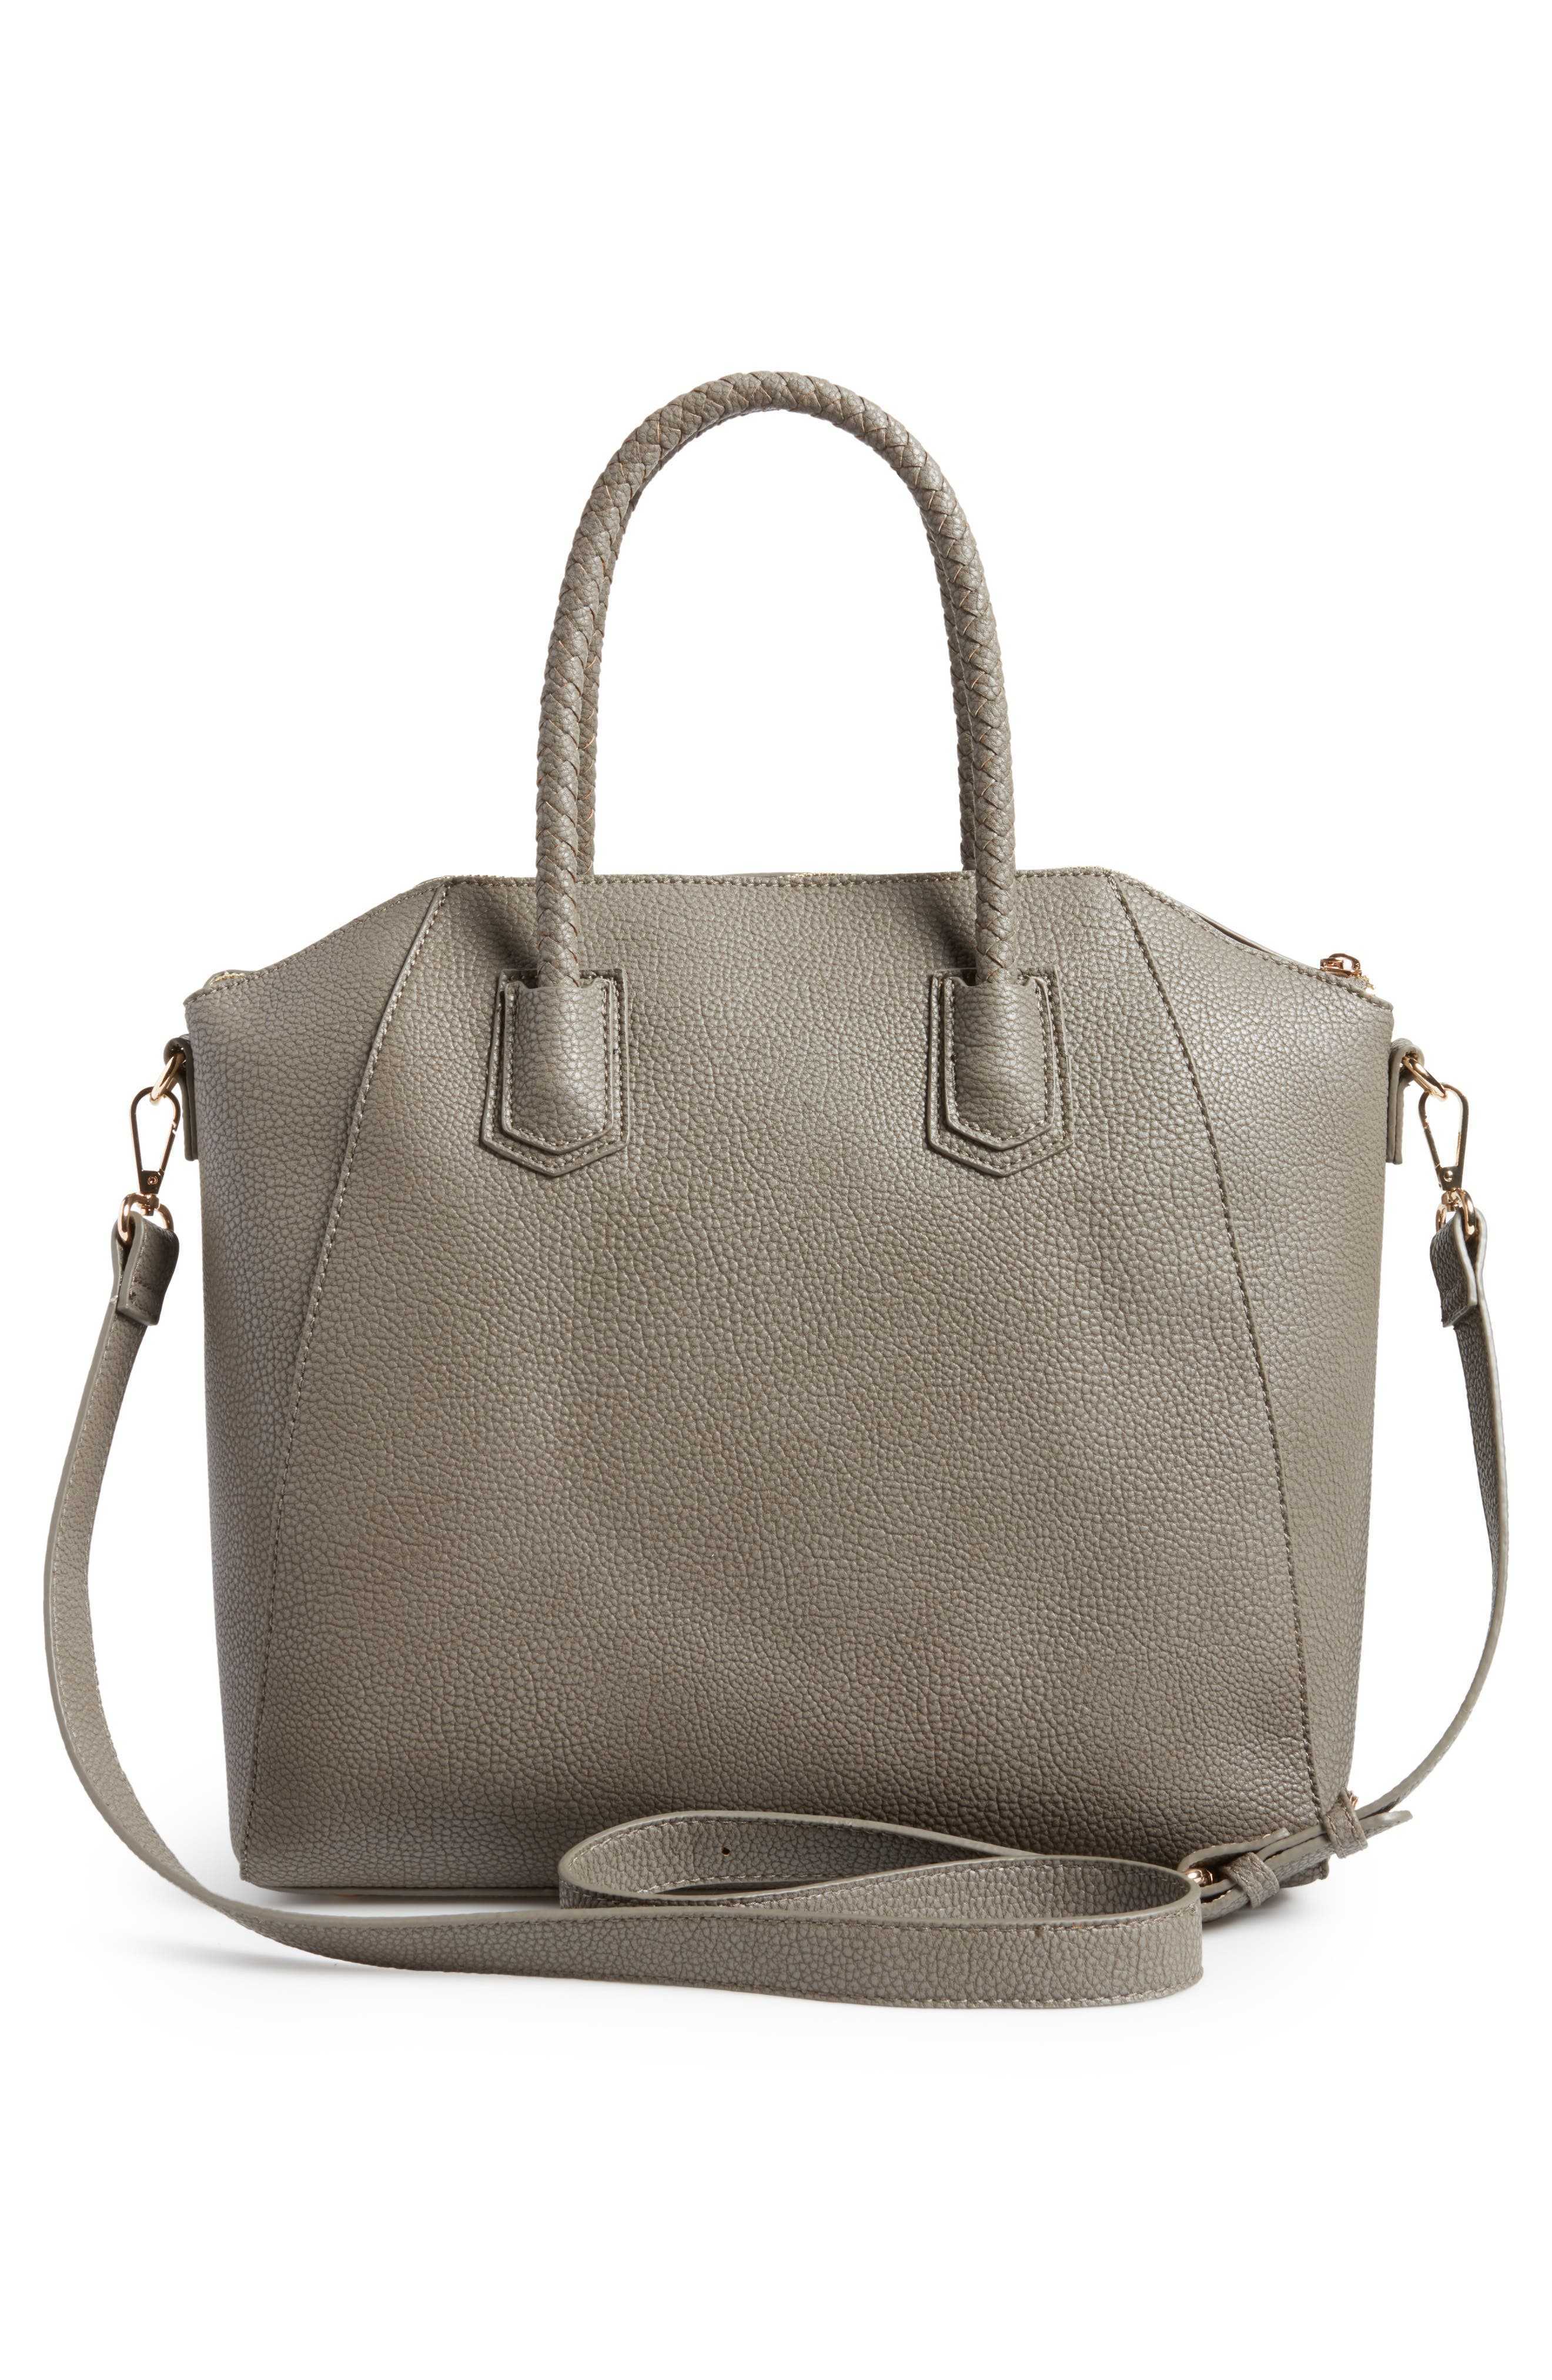 Giada Braided Faux Leather Satchel,                             Alternate thumbnail 3, color,                             Grey